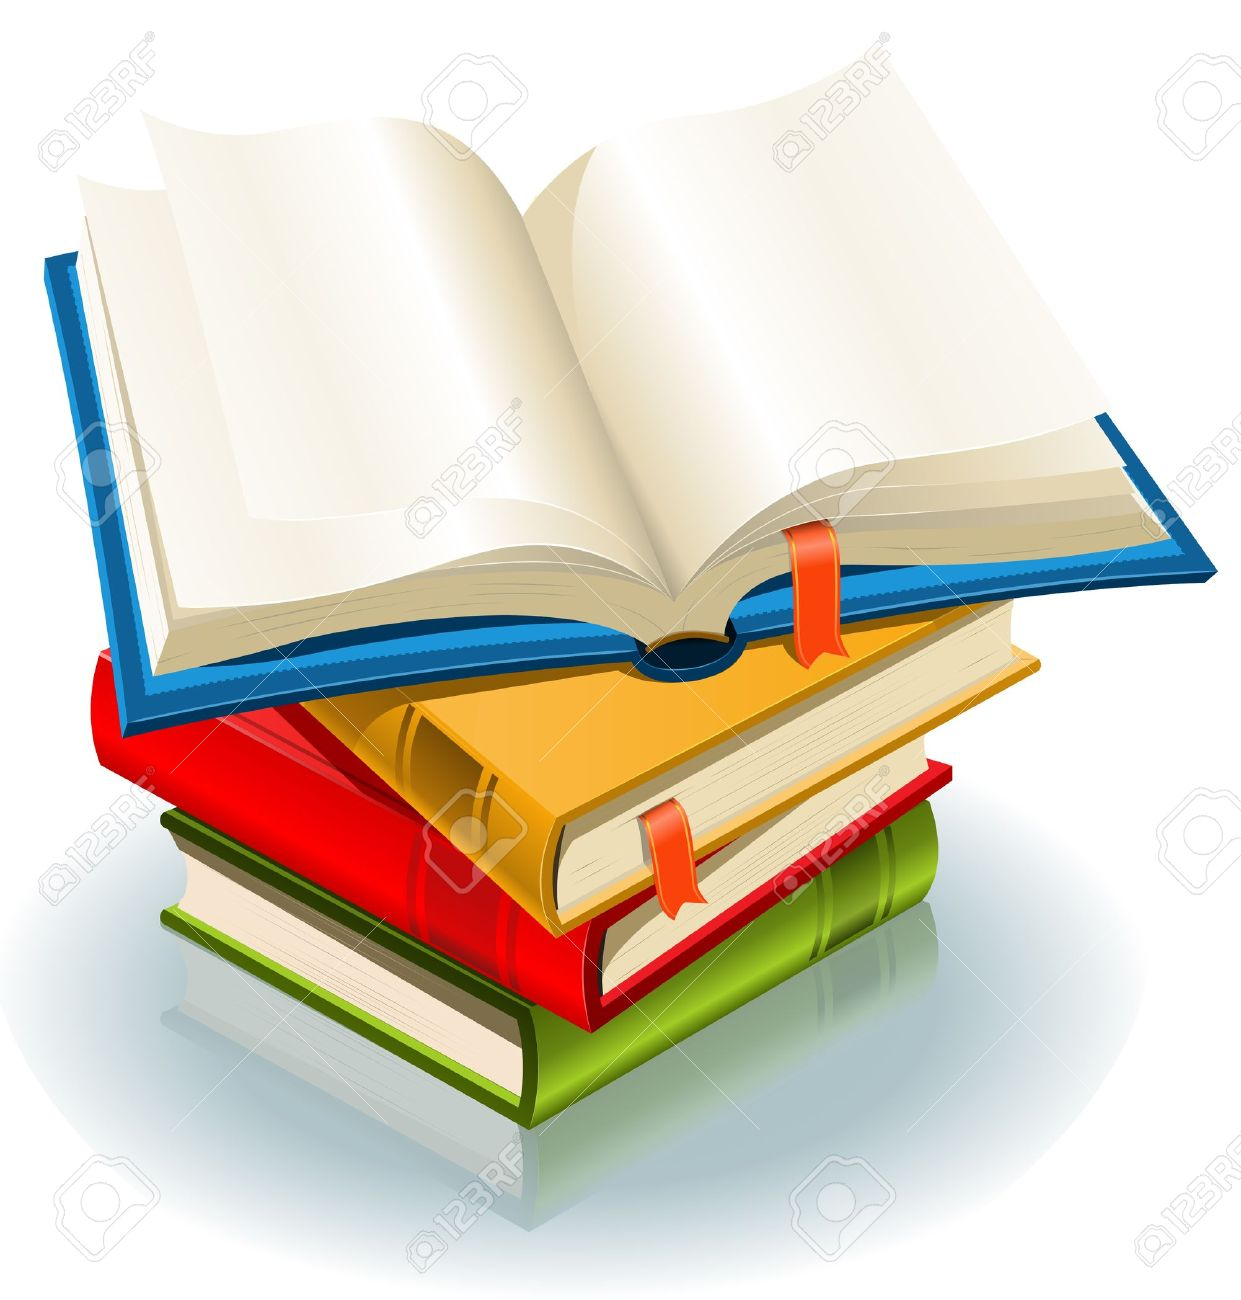 Illustration Of A Stack Of Elegant Books And One Book Opened